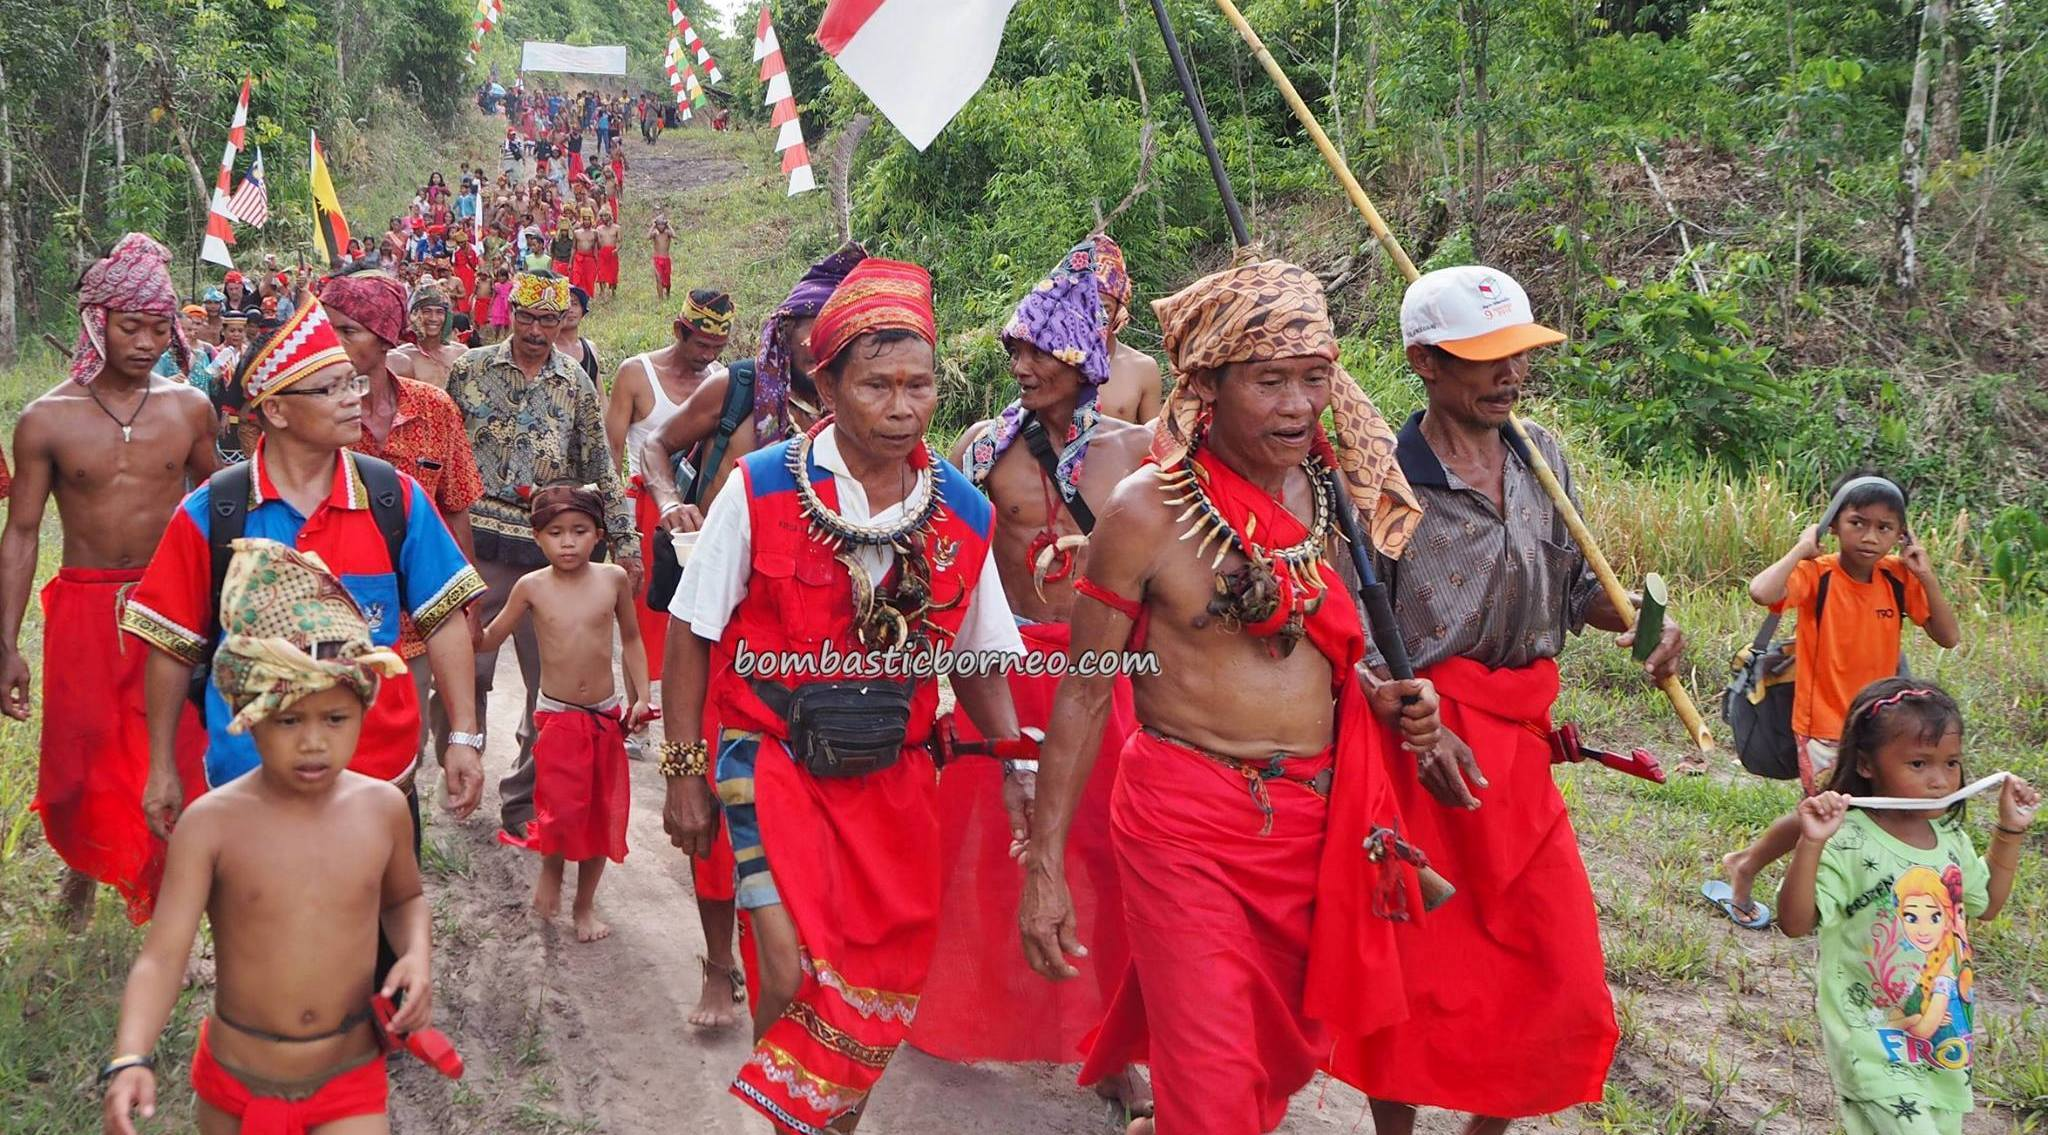 Paddy Harvest Festival, authentic, indigenous, backpackers, Indonesia, Desa Tangguh, Dusun Betung, Kampung Gumbang, dayak bidayuh, native, tribal, culture, Tourism, traditional, village, 原著民丰收节日